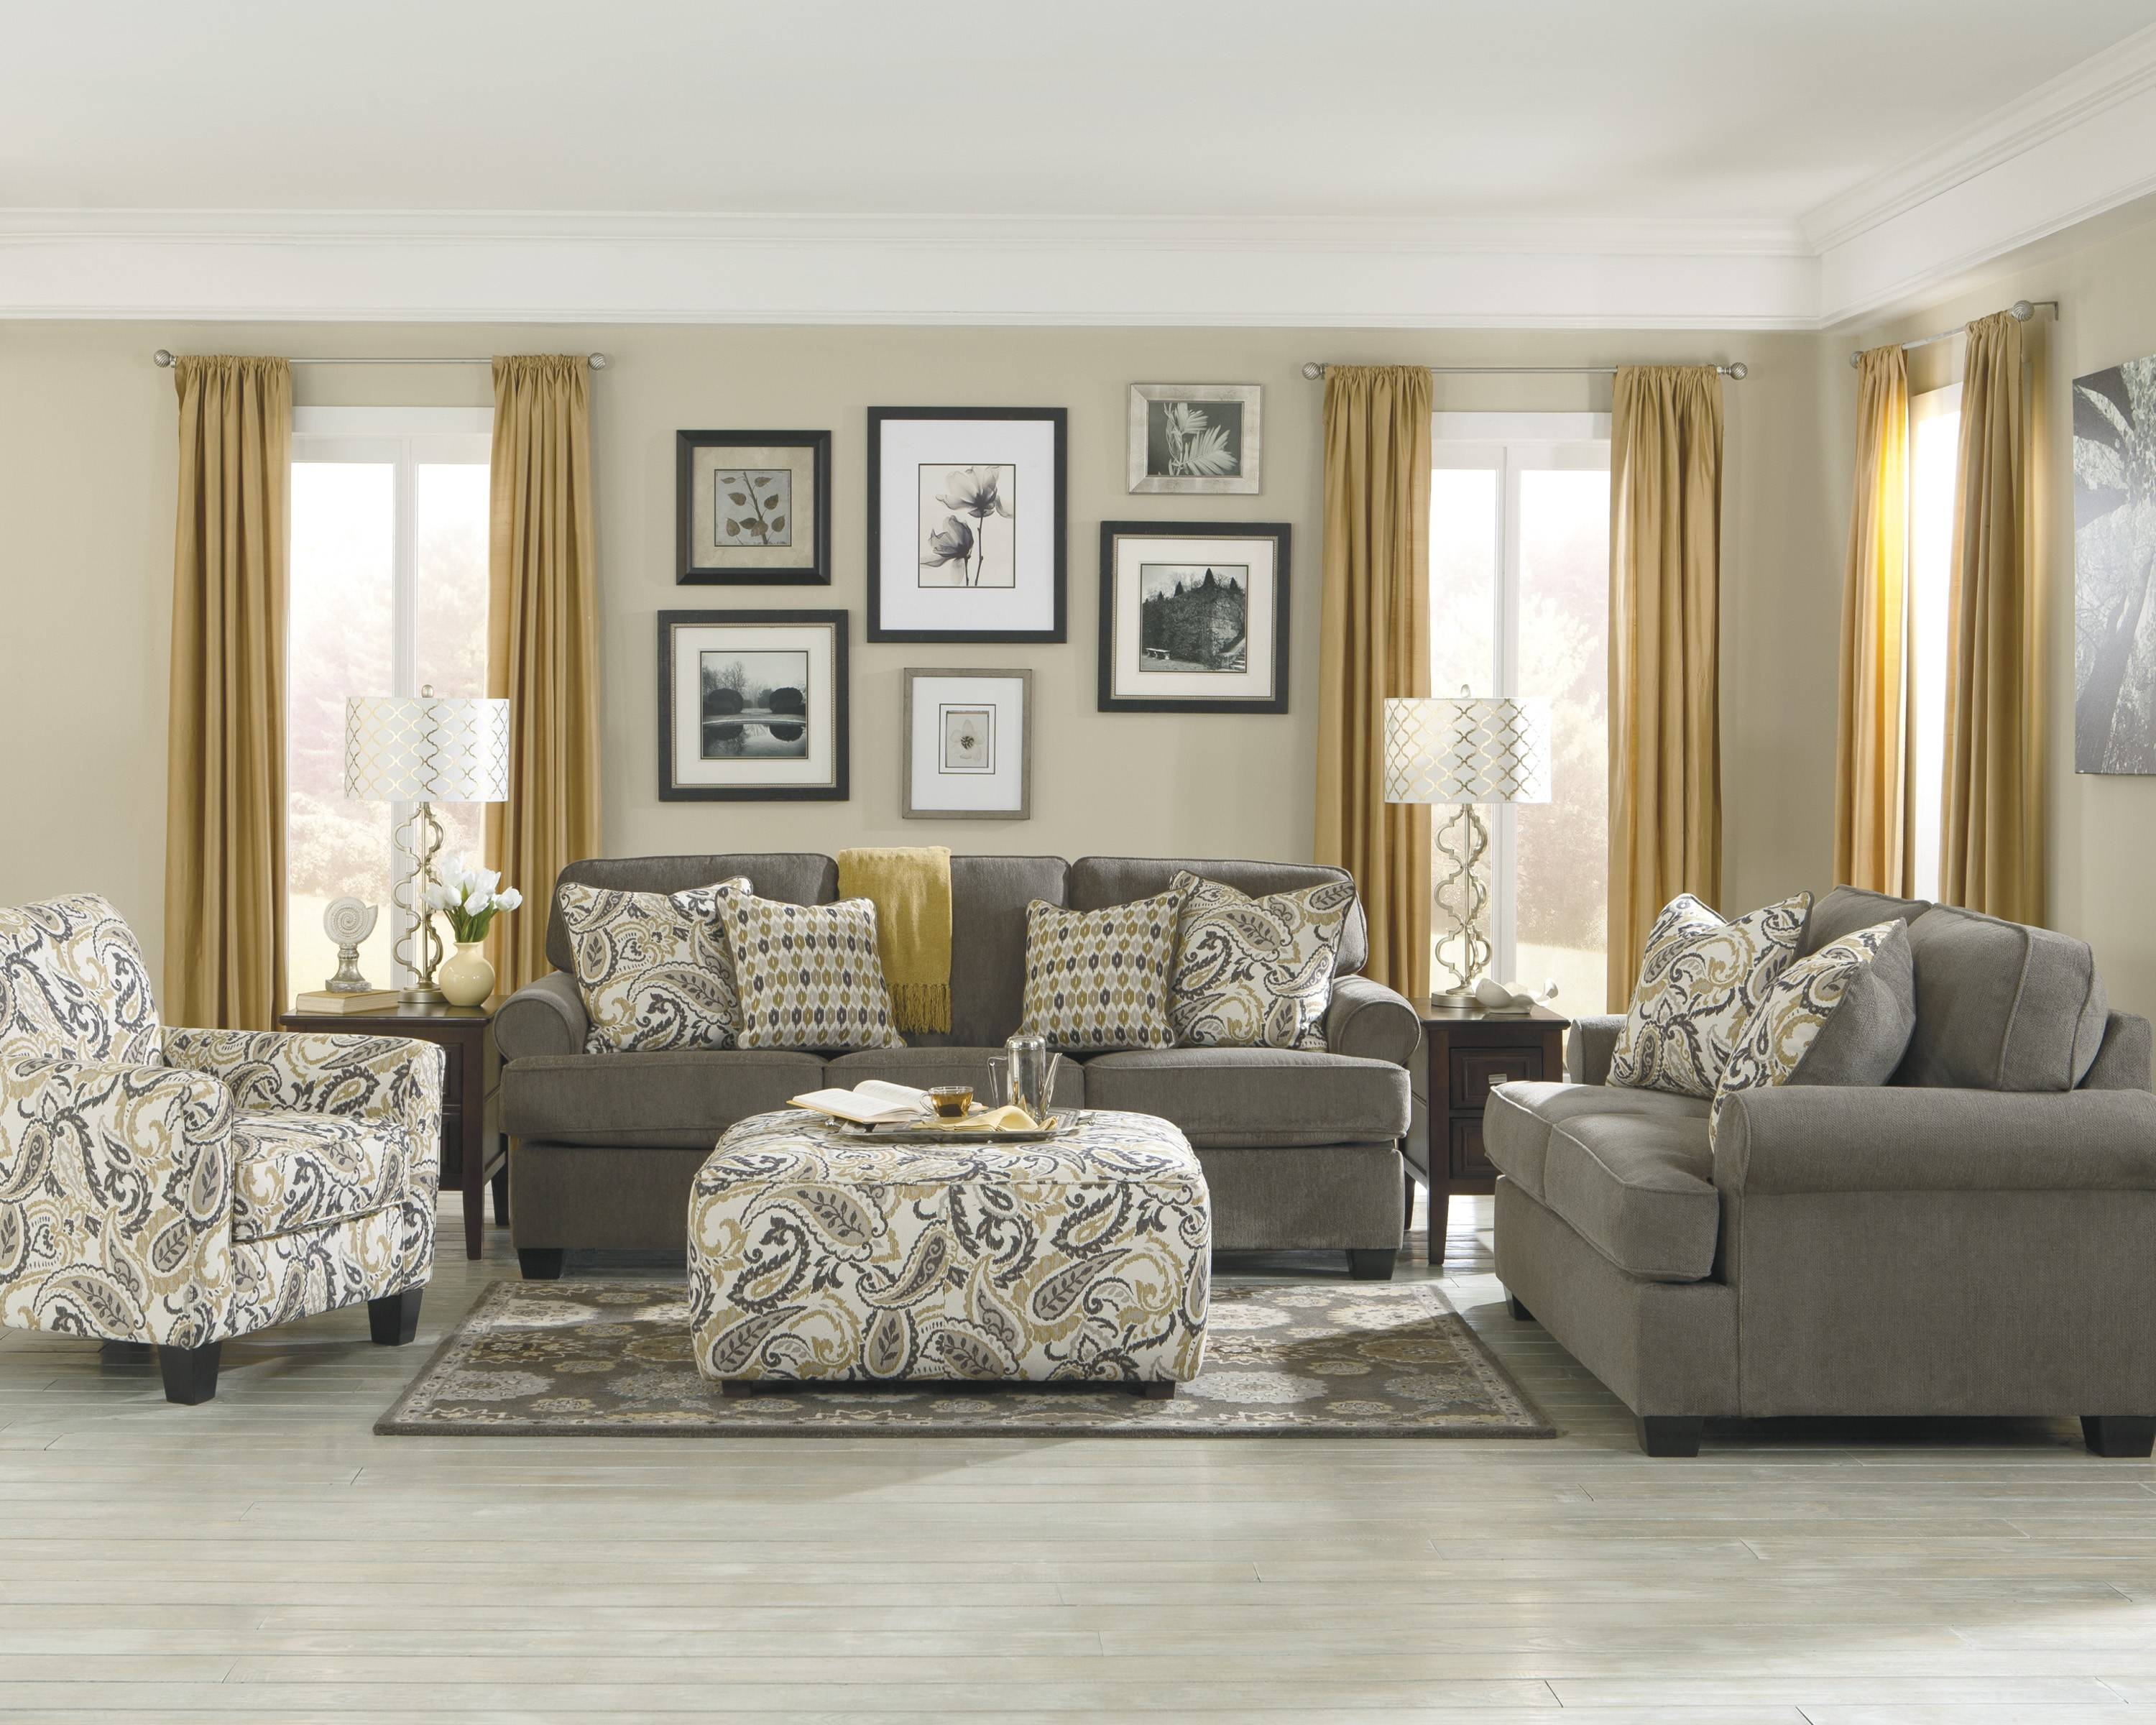 Winsome Grey Leather Living Room Sets pertaining to Living Room Sofas and Chairs (Image 14 of 15)